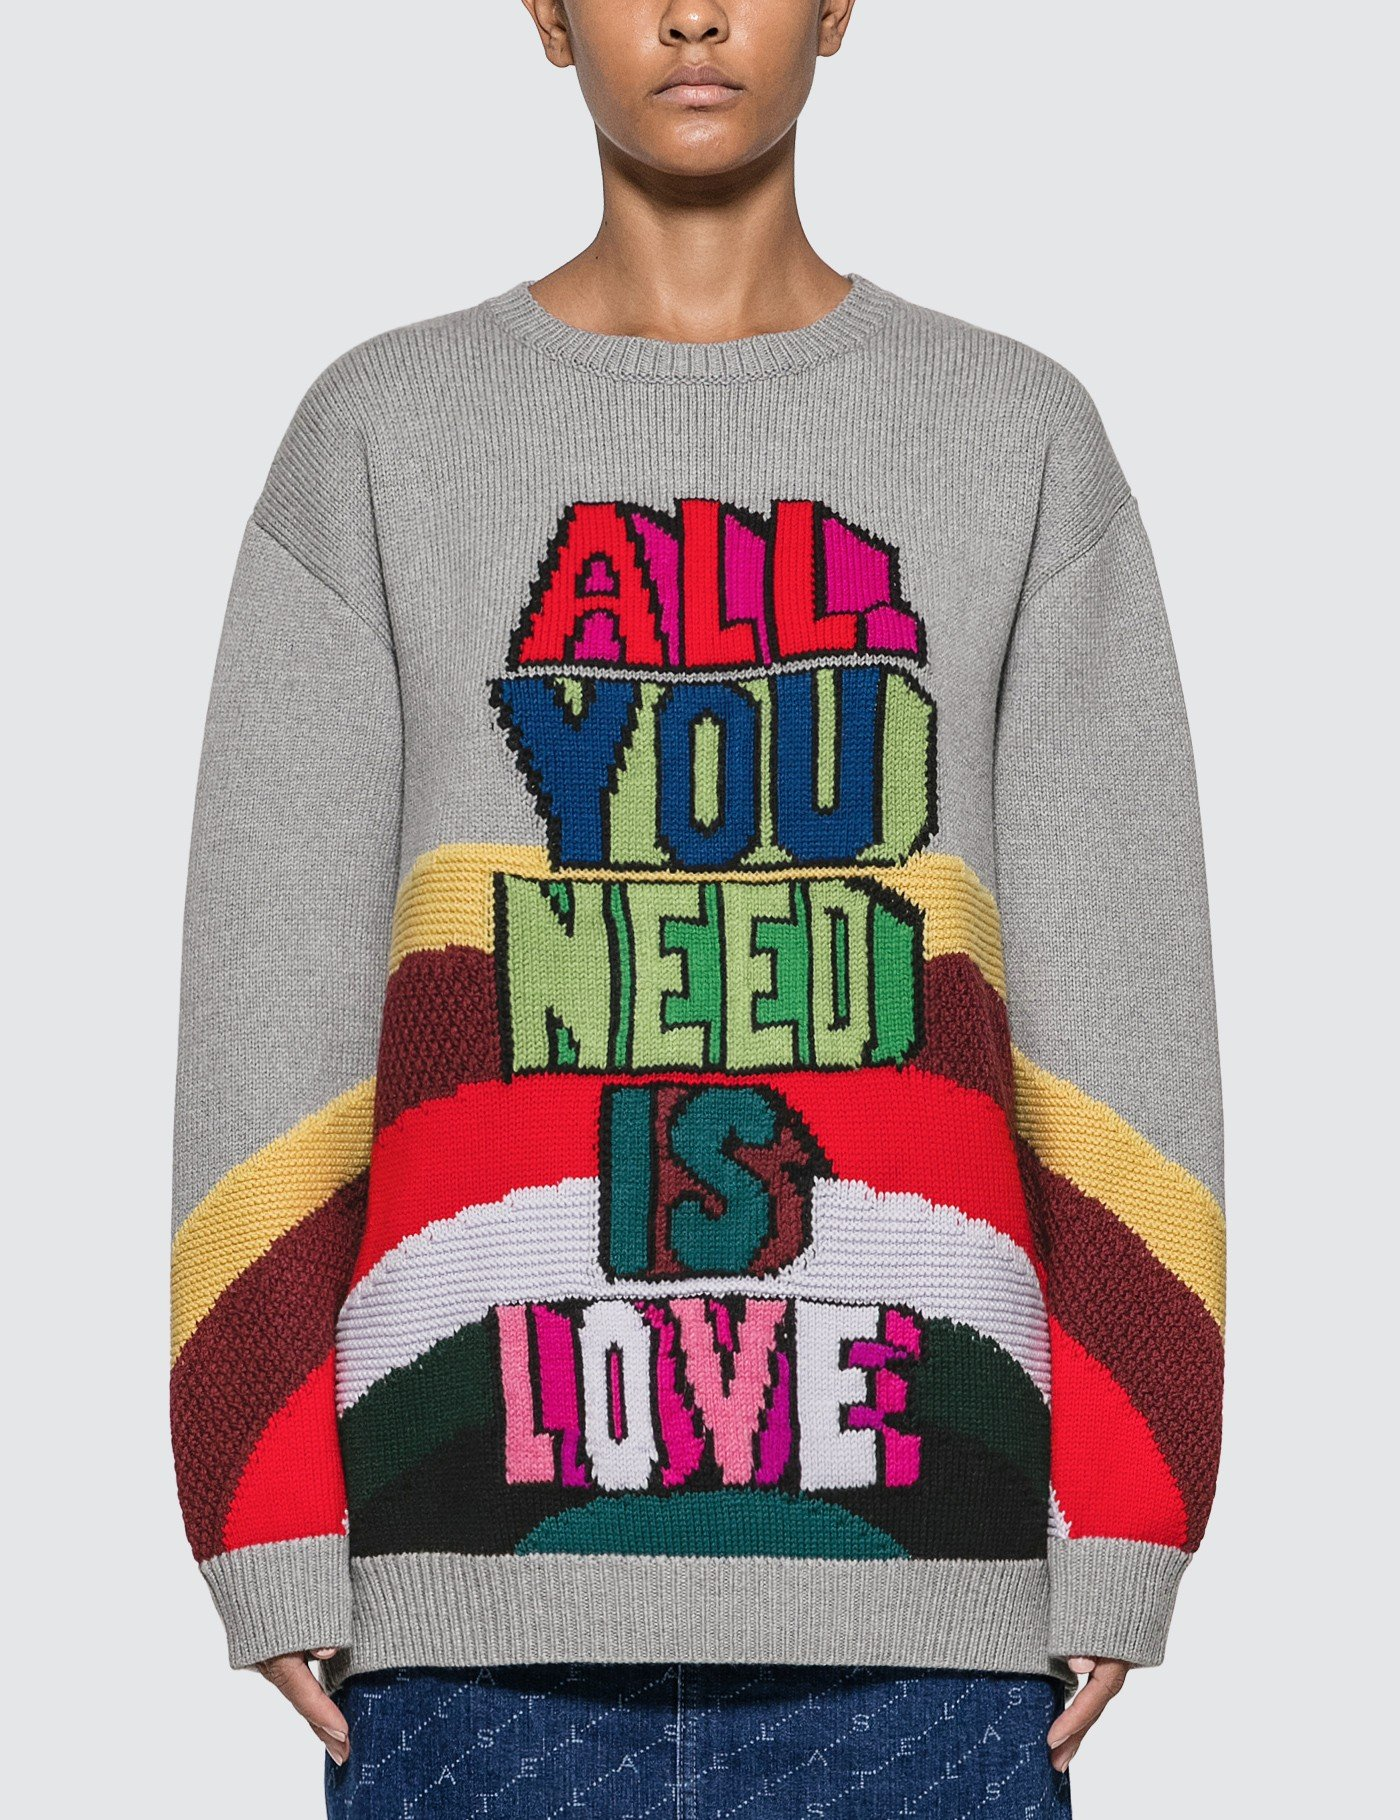 All You Need Is Love Knitted Sweater